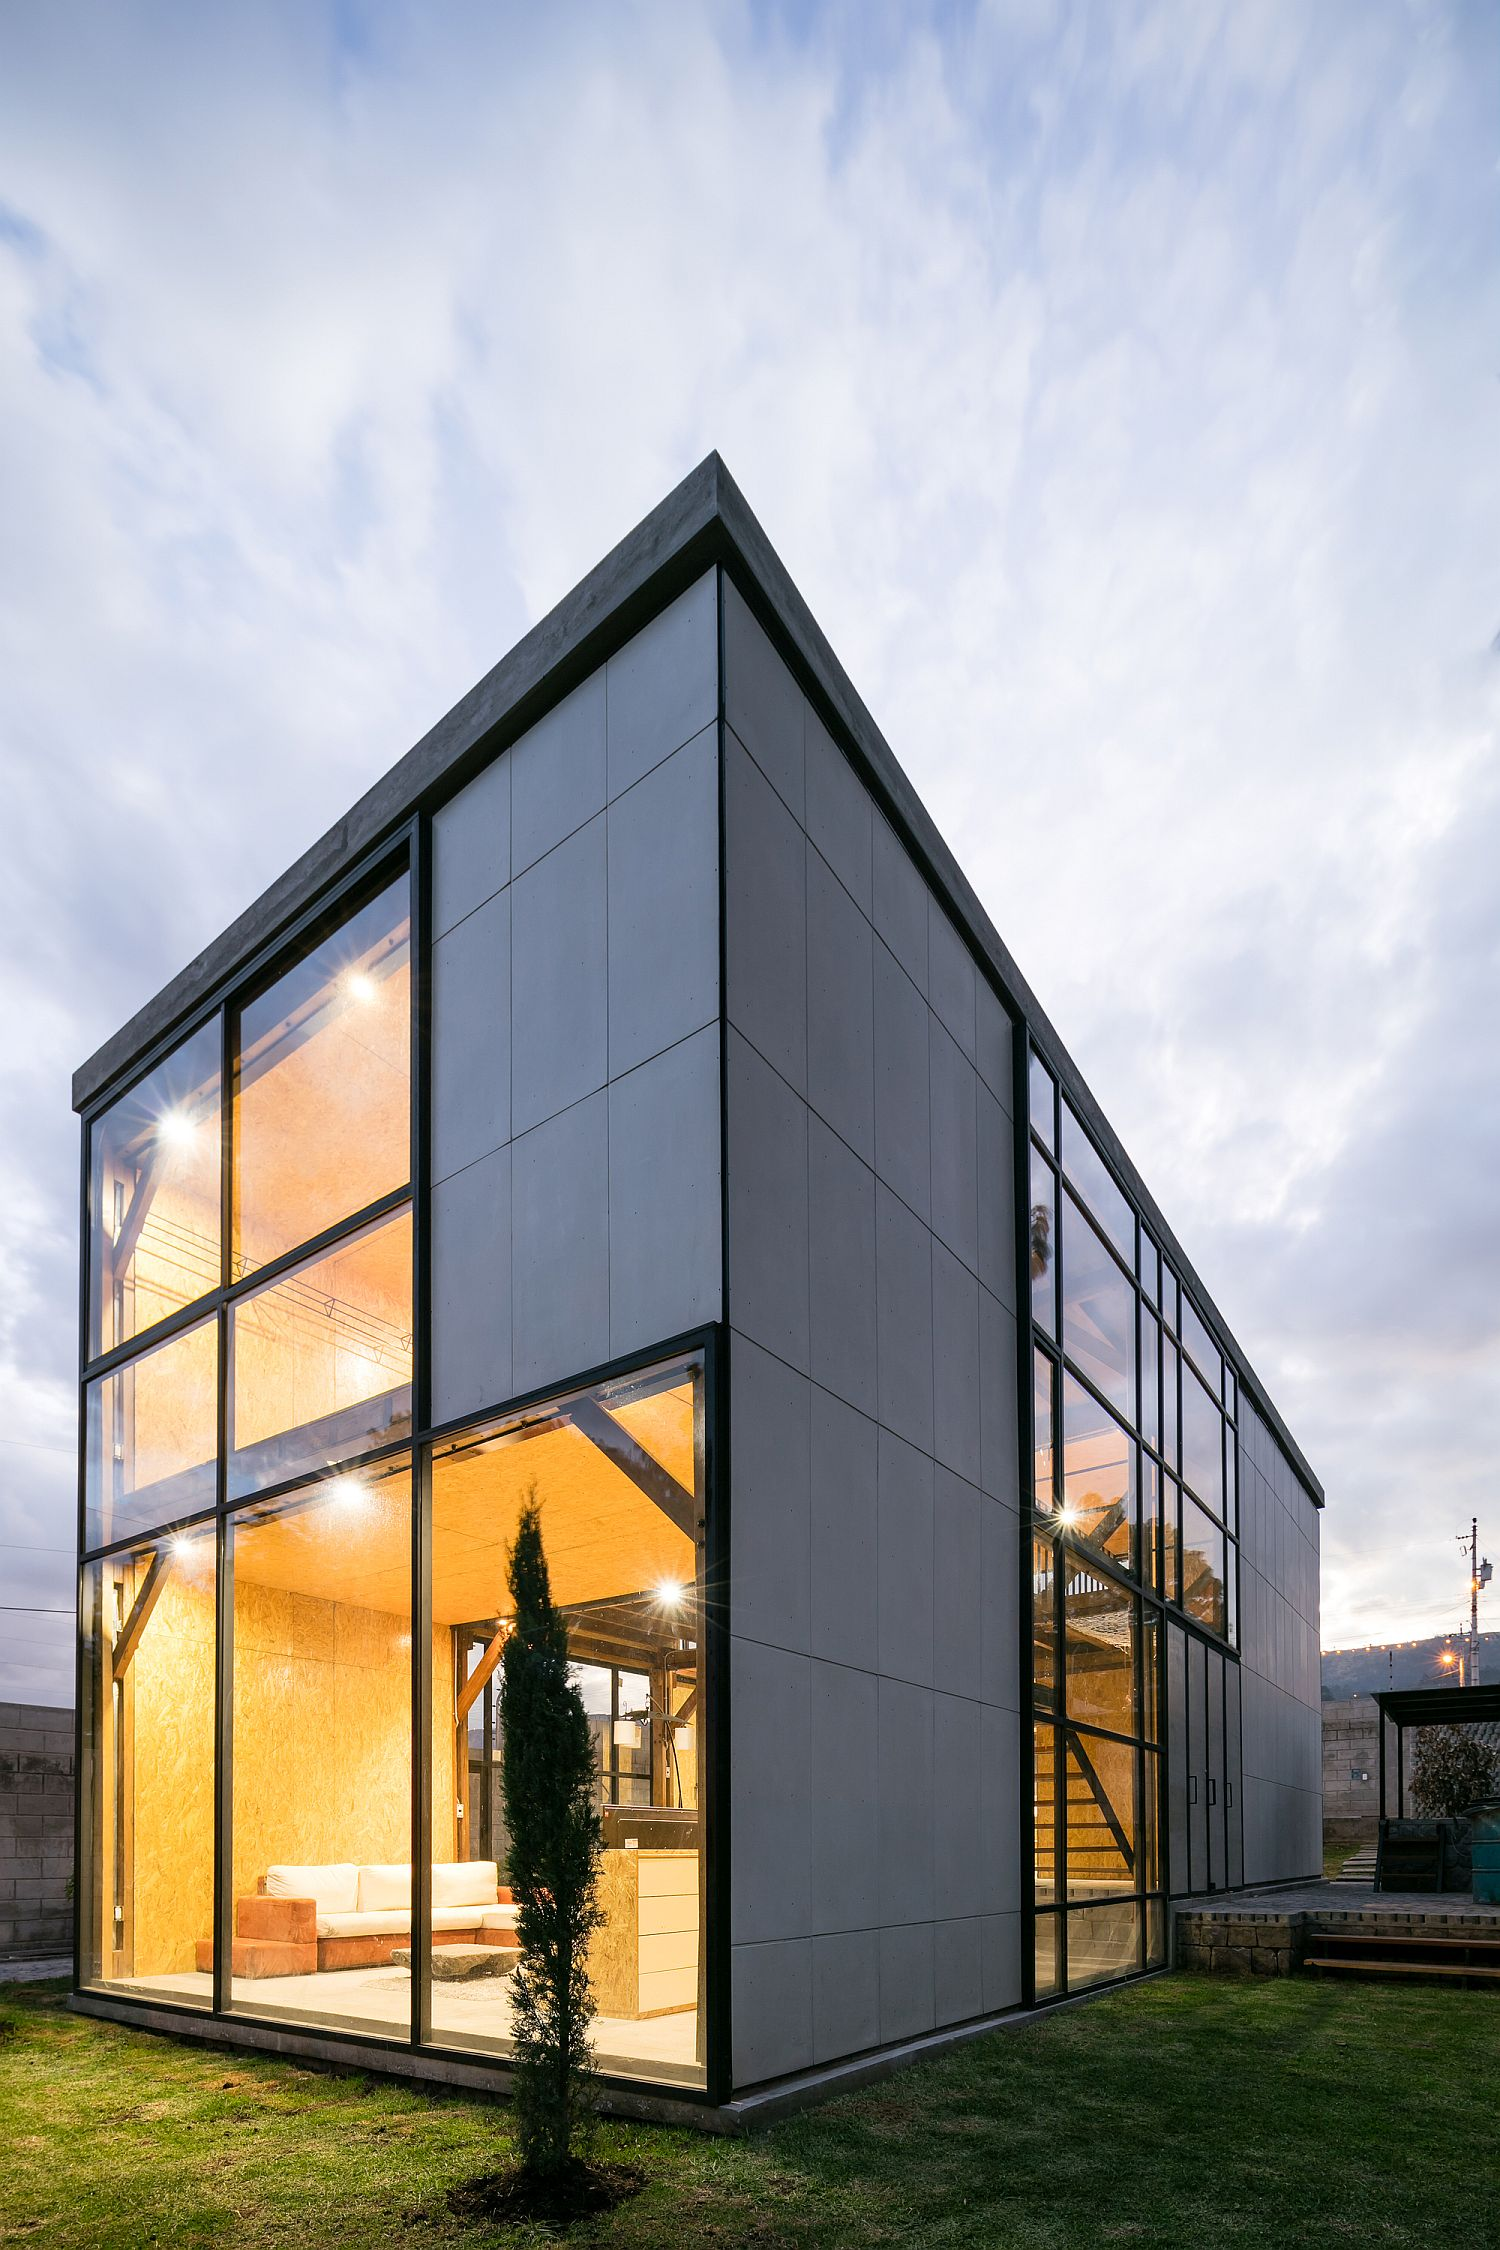 Simple cement panels with socket joints and glass windows shape the multi-generational home in Quito